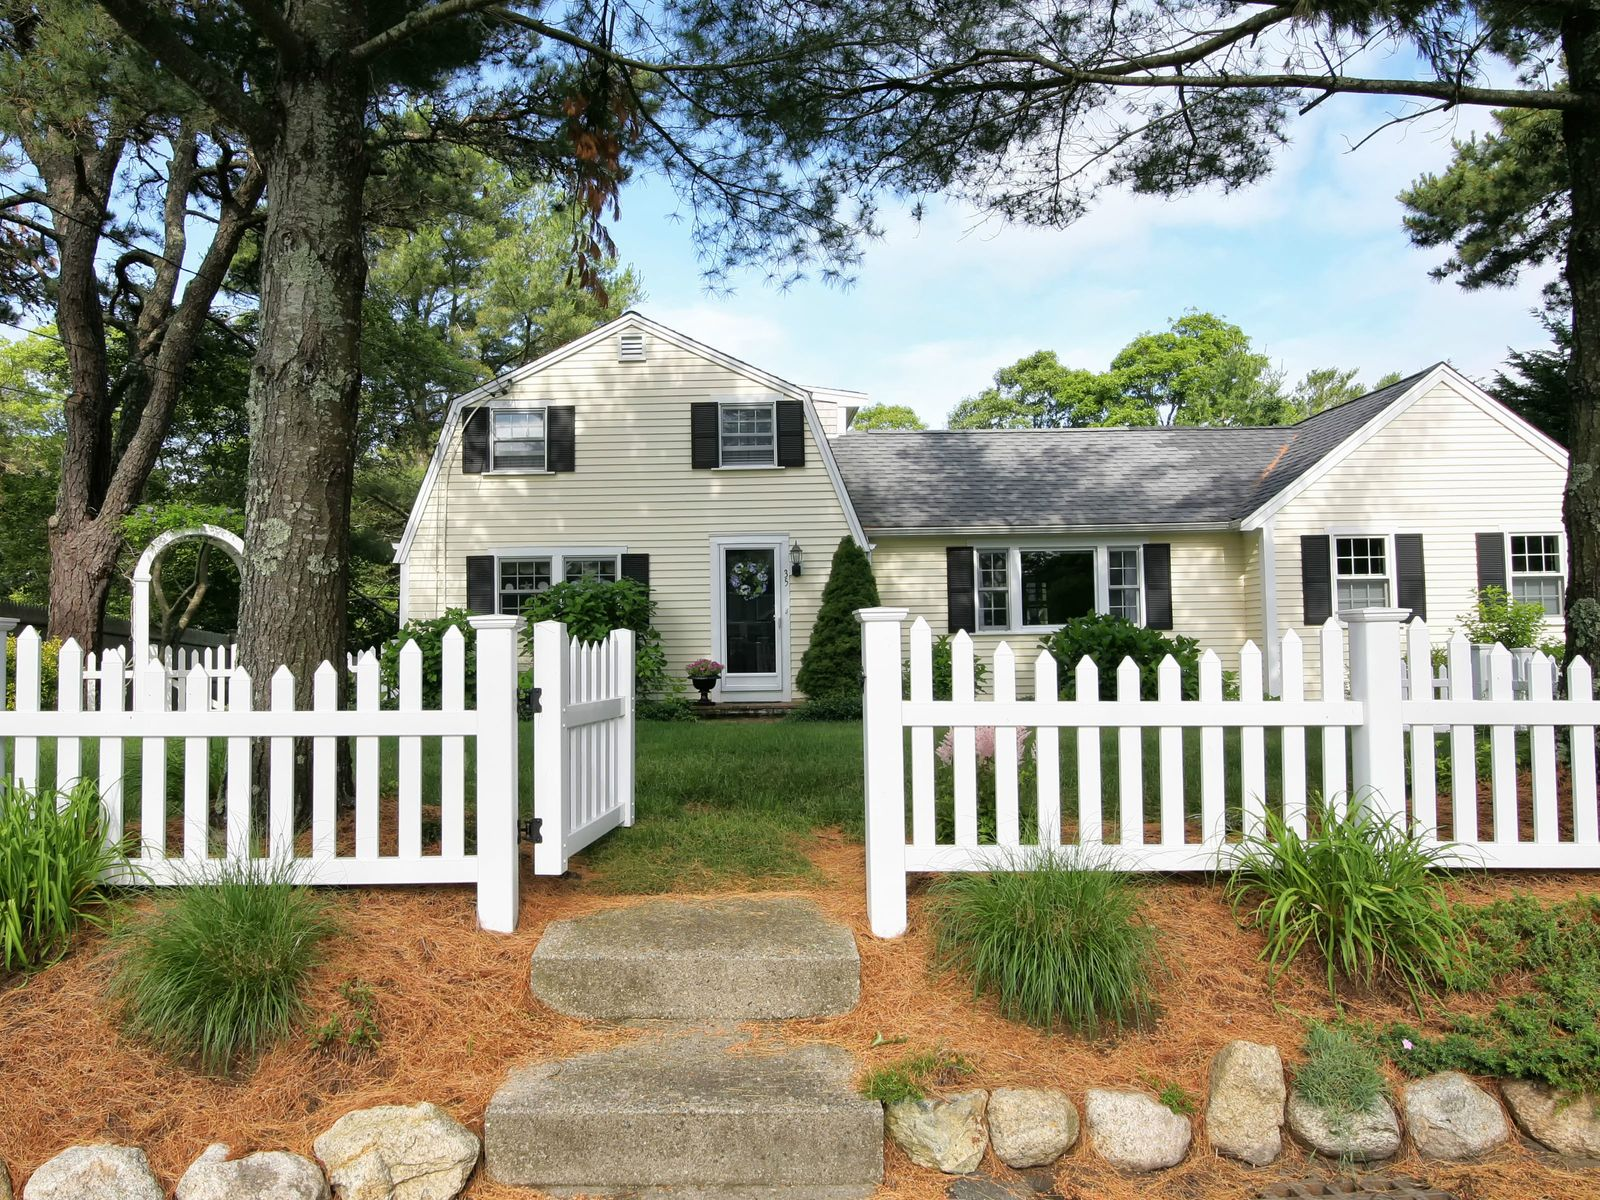 Cape Cod Living, Centerville MA Single Family Home - Cape Cod Real Estate